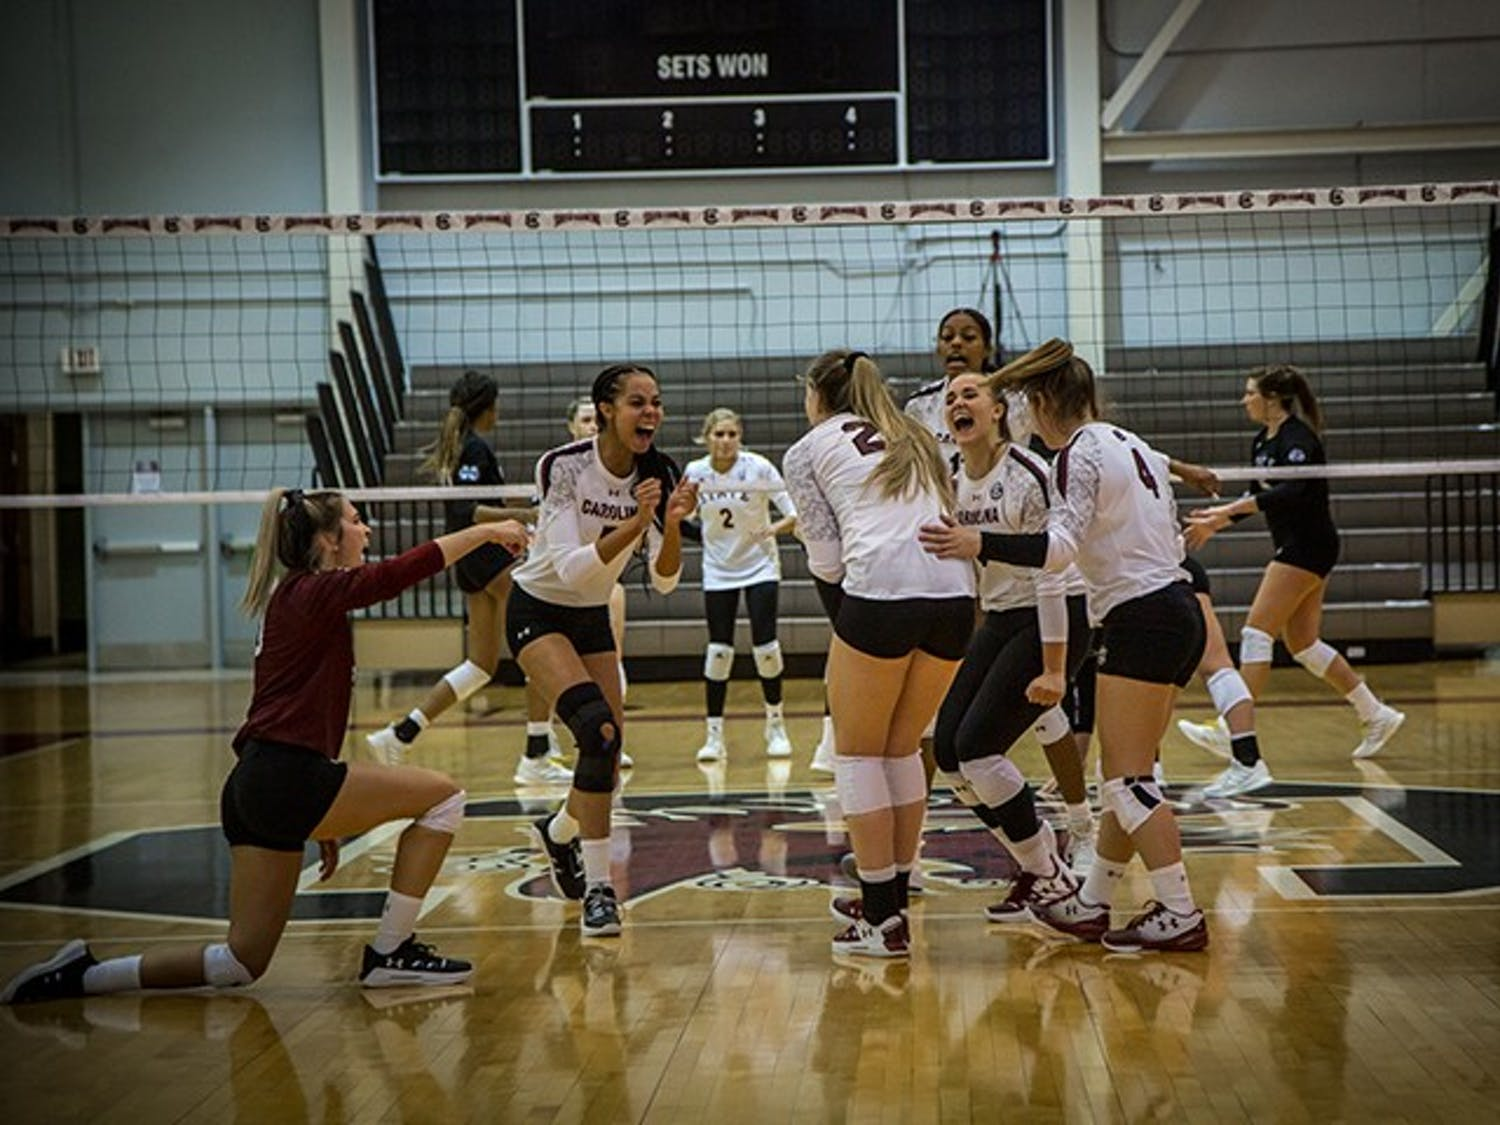 Members of the UofSC women's volleyball team celebrate after scoring a point against Mississippi State. The Gamecocks improved their record to 5-1 at home after the win.